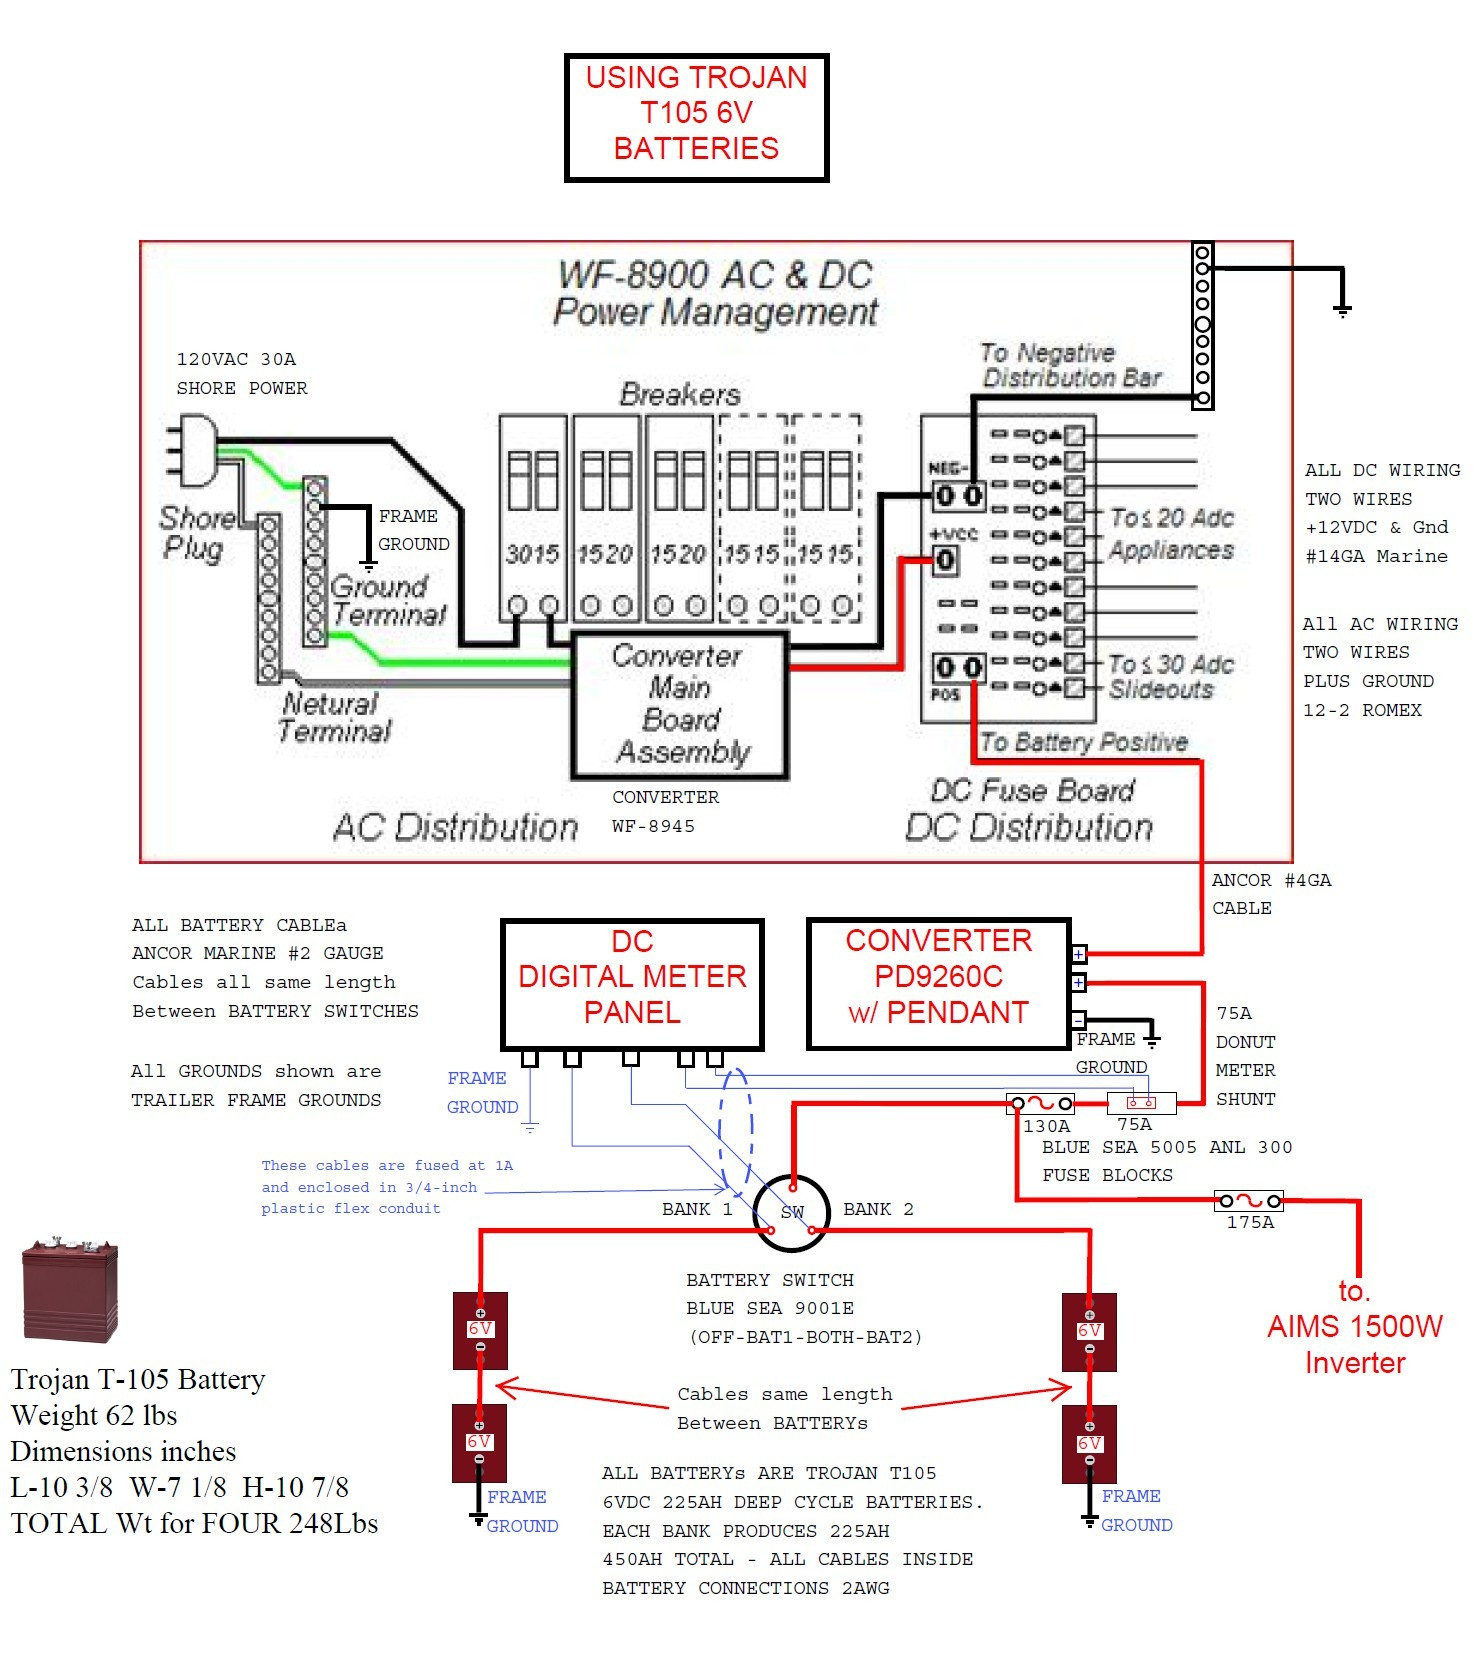 rv battery disconnect switch wiring diagram Collection-Wiring Diagram For Ac Disconnect Valid Rv Battery Disconnect Switch Wiring Diagram Originalstylophone 10-o